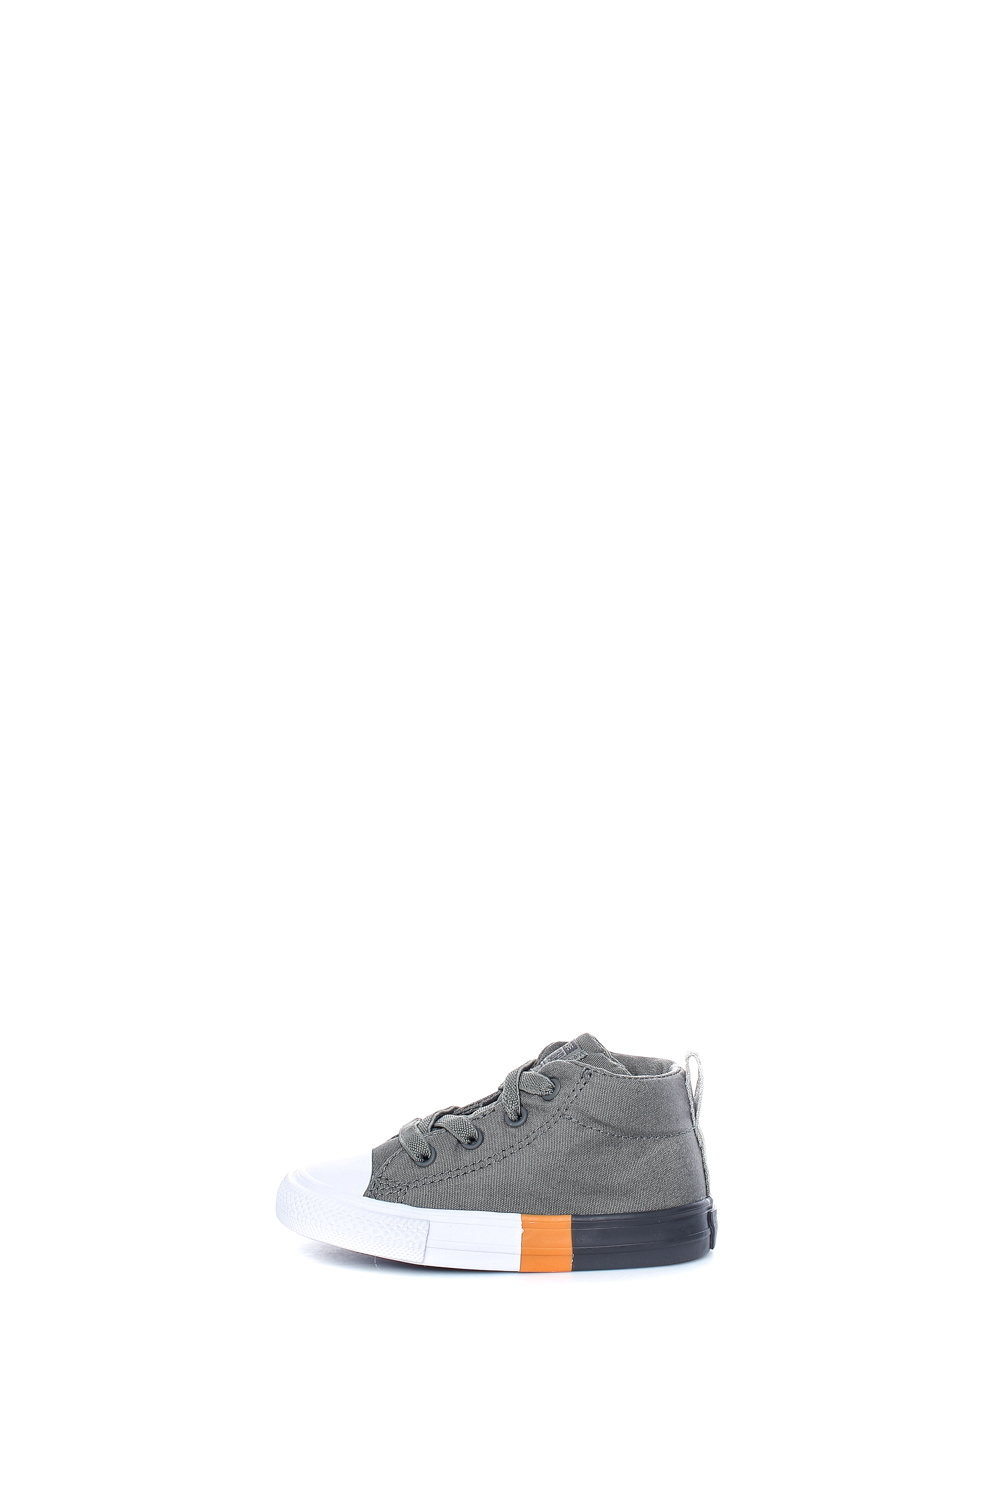 -48% Collective Online CONVERSE – Βρεφικά μποτάκια Chuck Taylor All Star  Street γκρι 9ba024950fa